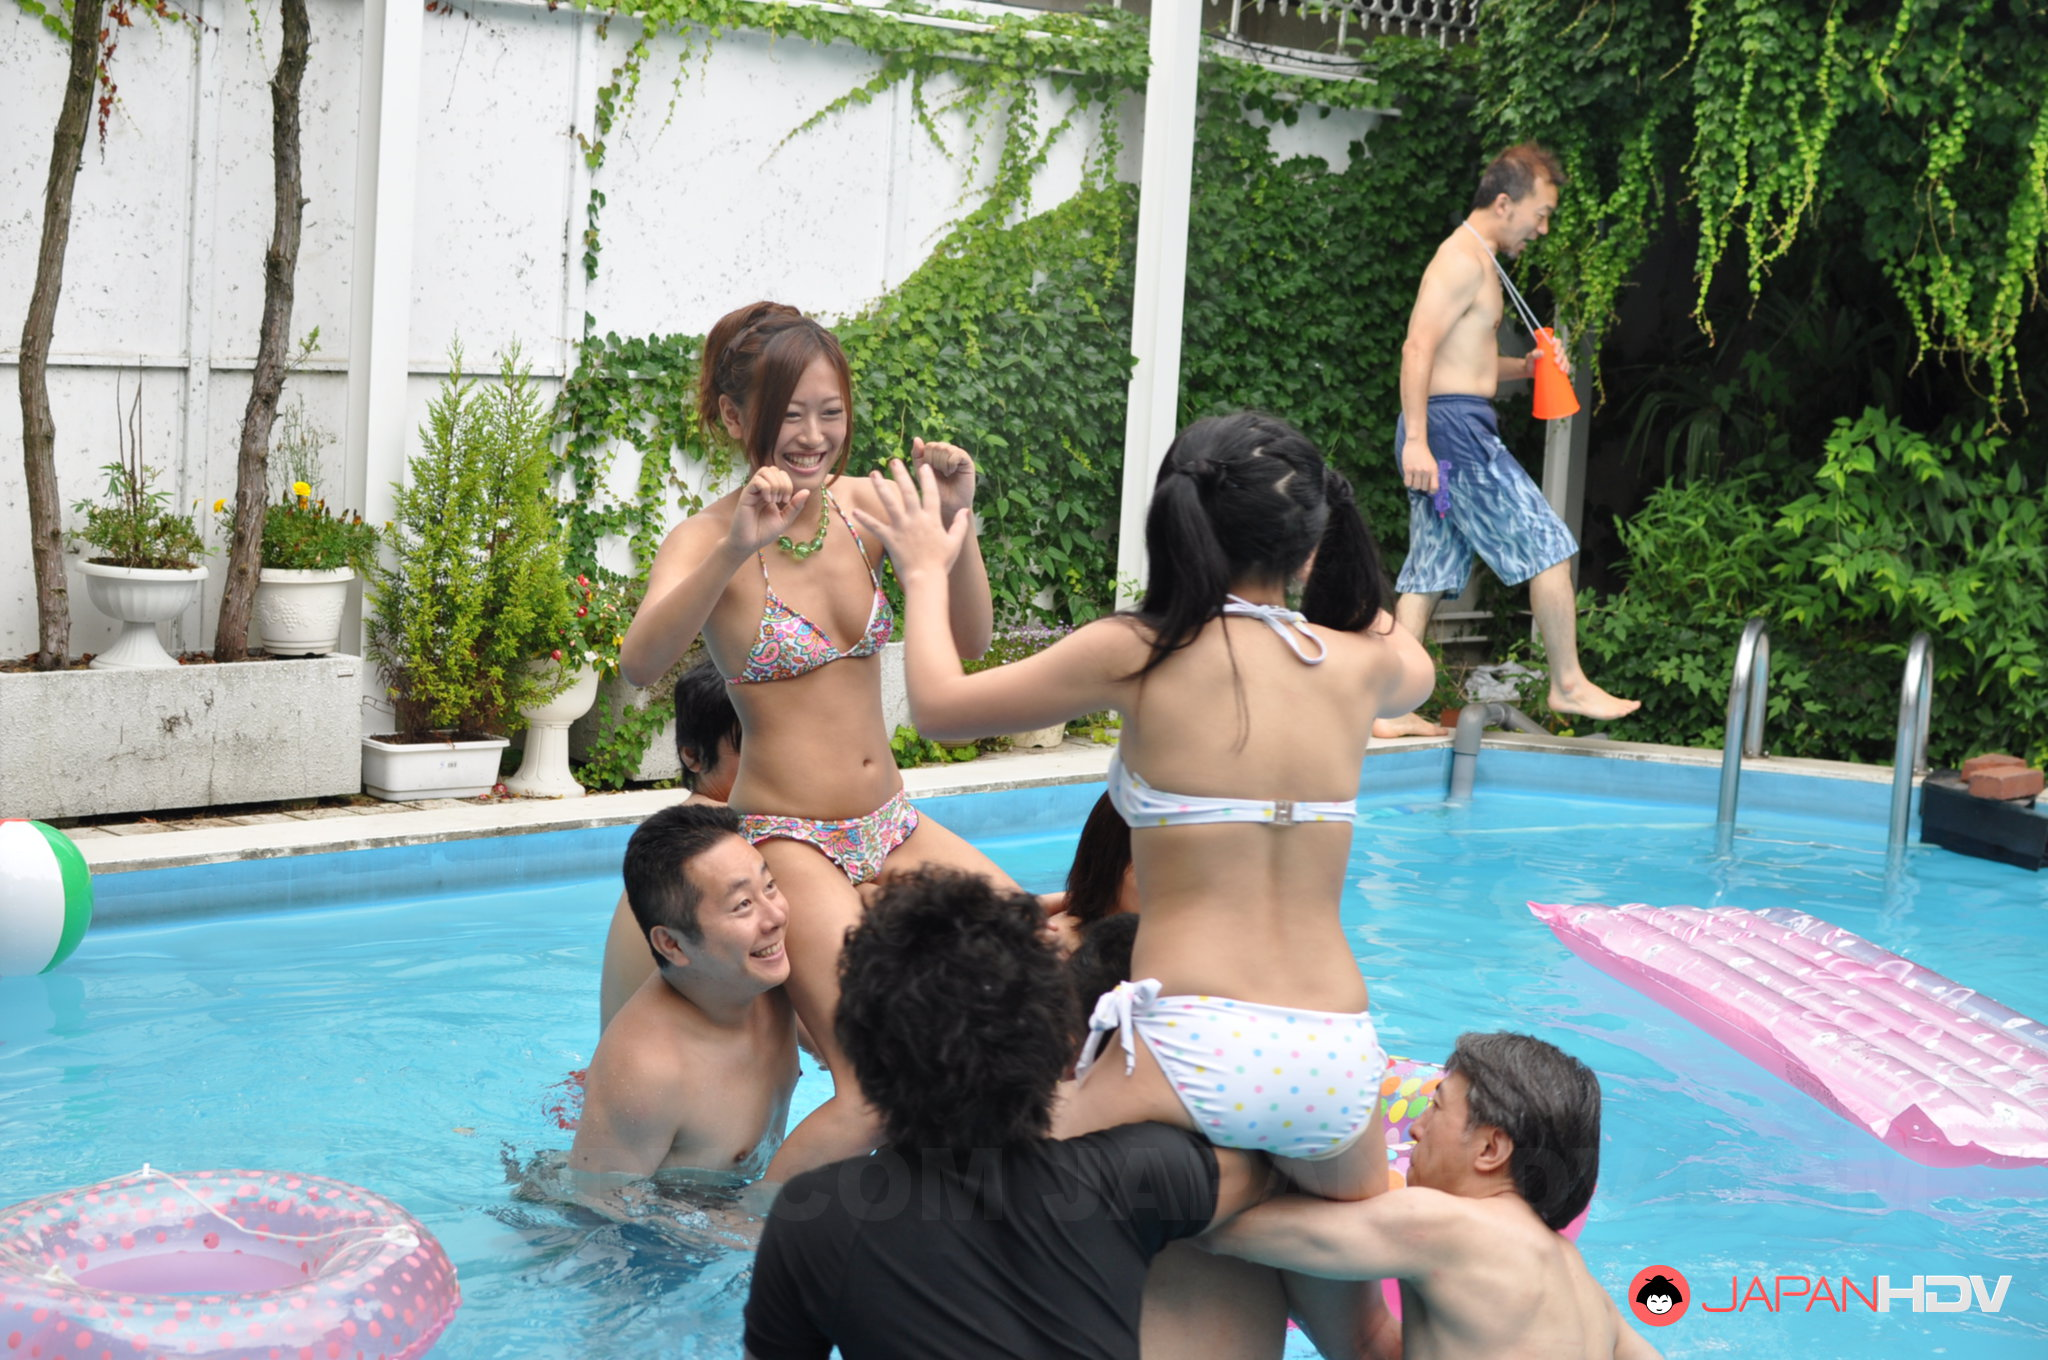 female-swimmers-showing-pussy